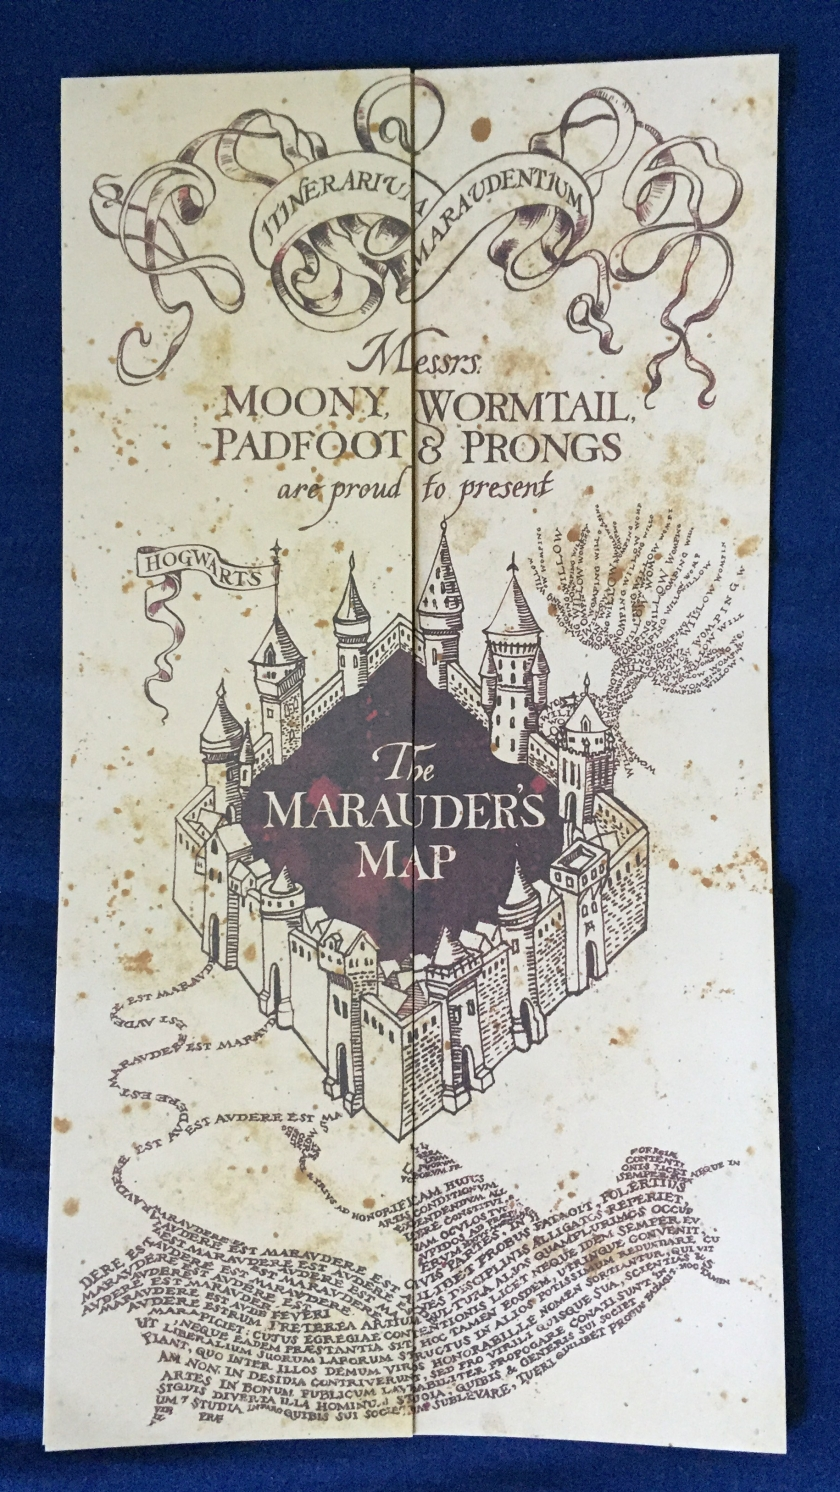 The folded-up Marauder's Map, tall and cream coloured, with decorative artwork in black ink. Near the top is the text Messrs Moony, Wormtail, Padfoot and Prongs are proud to present. Below this is a 4 walled square castle with the text The Marauder's Map in the centre on a black background.